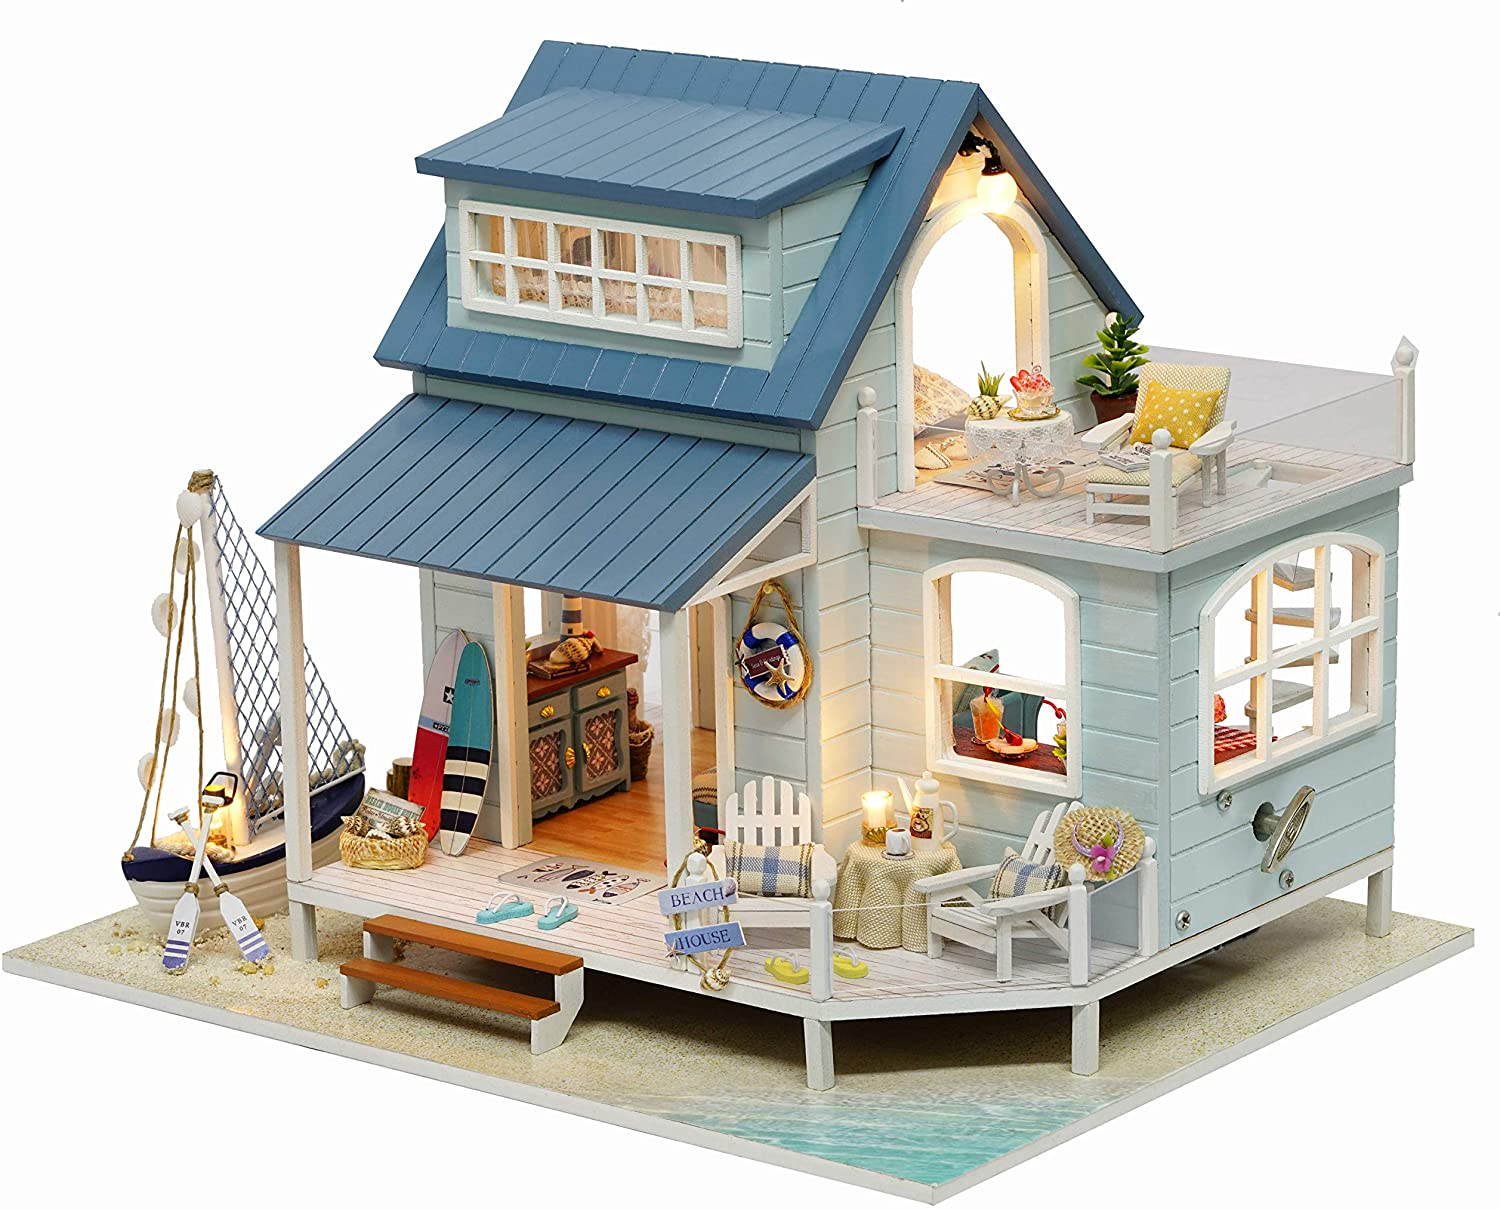 Kisoy Romantic and Cute Dollhouse Miniature DIY House Kit Creative Room Perfect DIY Gift for Friends,Lovers and Families (Time in Caribbean Sea)